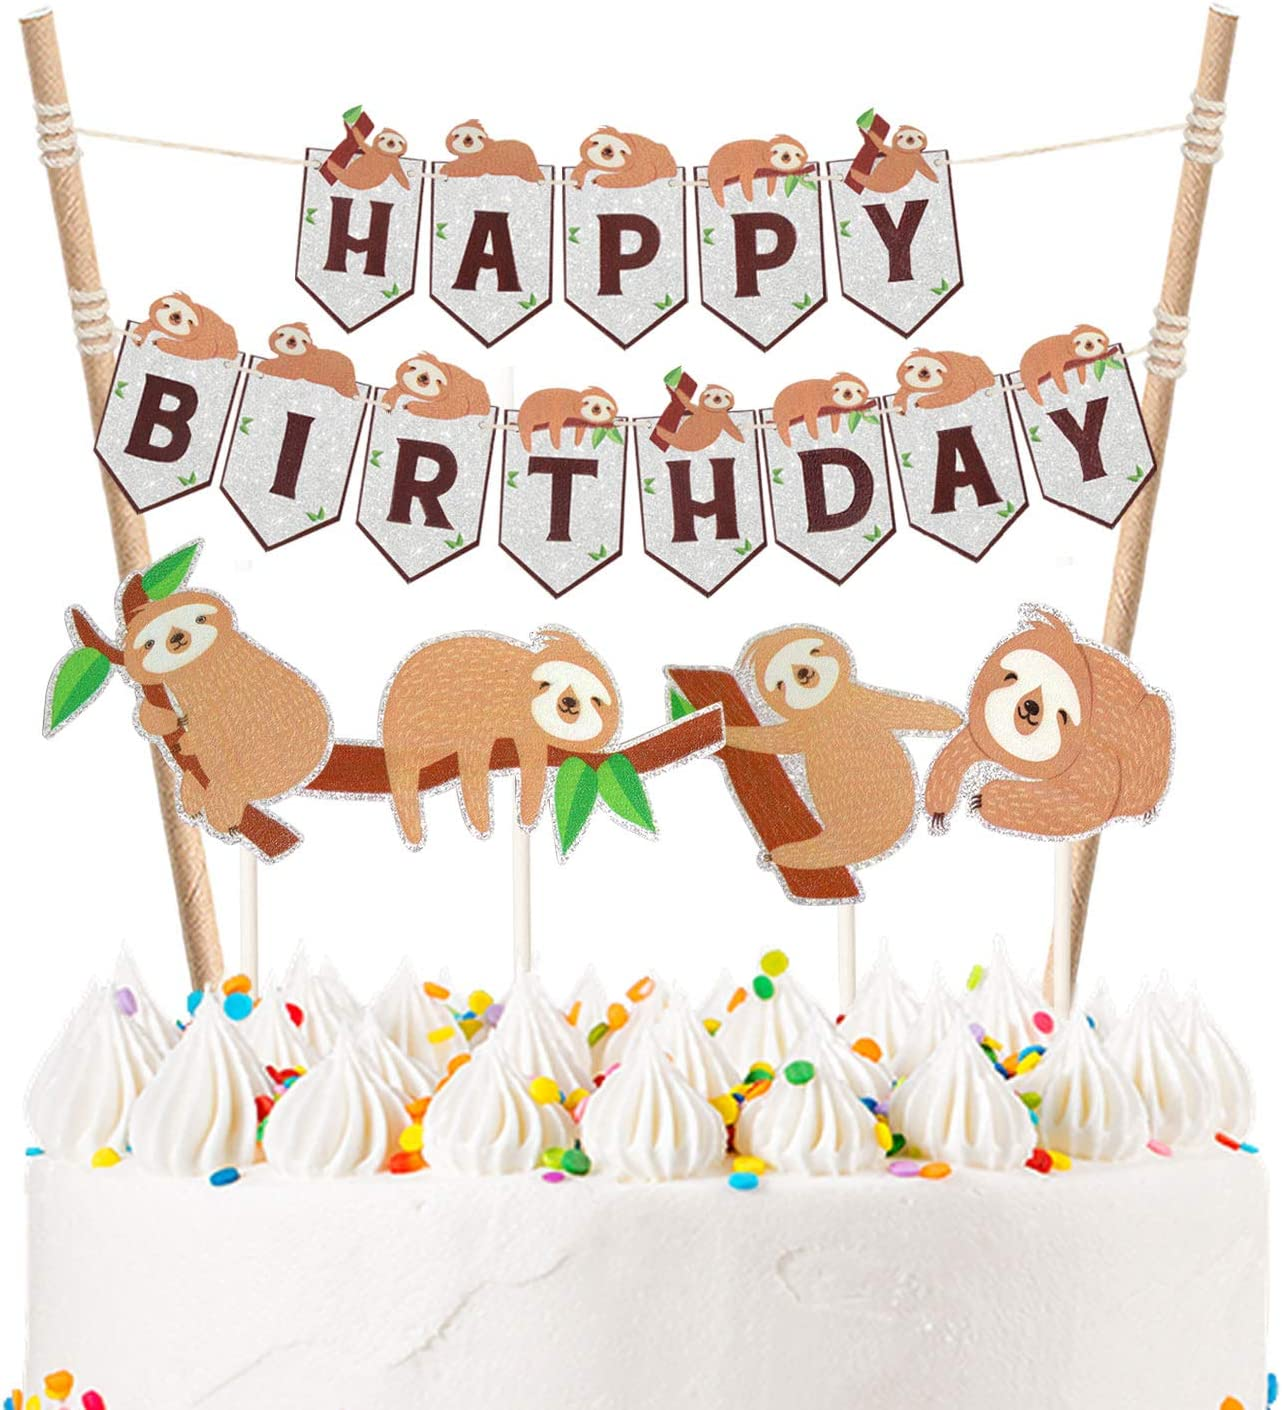 Amazon Com Liliparty Set Of Cute Sloth Happy Birthday Cake Bunting Toppers Cartoon Sloth Cake Banner Woodland Animals Theme Birthday Party Baby Shower Decorations Supplies Pre String Together Home Kitchen